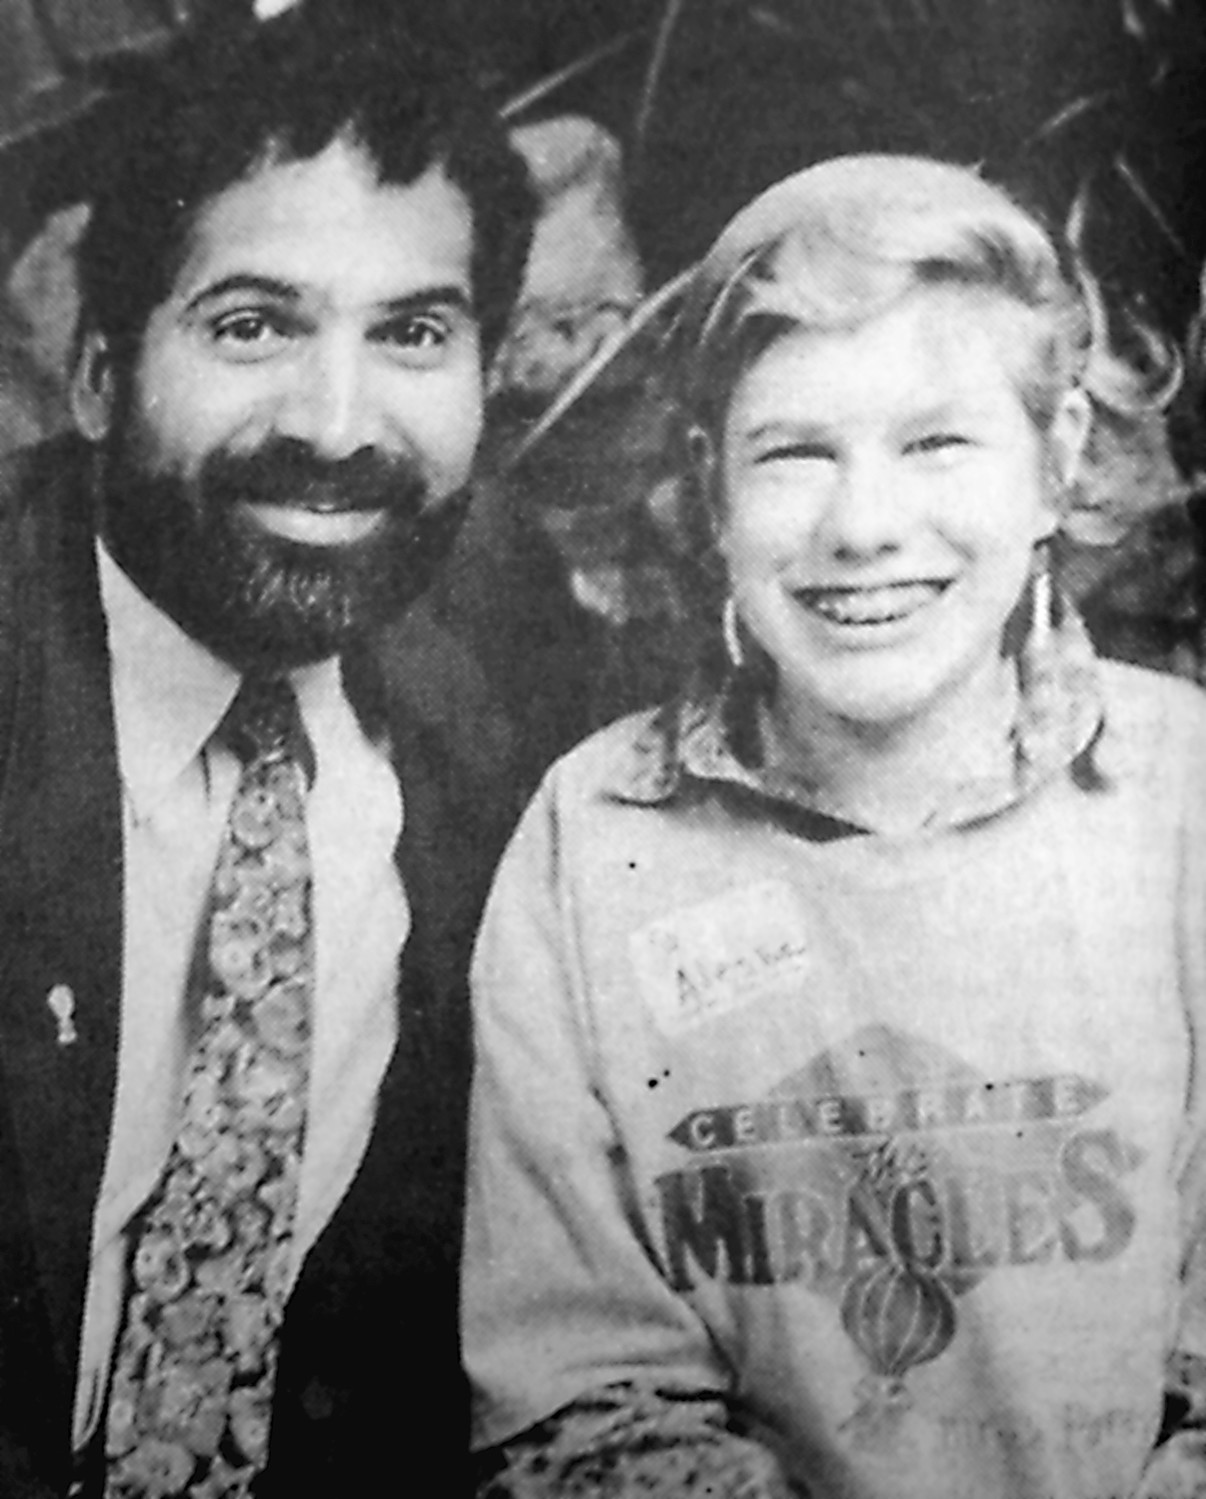 Miracle child Alesha Noll, the daughter of Ronald Thomas and Amanda Noll of Middletown, is pictured with Franco Harris, former Penn State Nittany Lion and Pittsburgh Steeler. Harris was honorary chairman of the 1992 Children's Miracle Network Telethons held May 30 and 31 at Hershey's Chocolate World visitors center. The benefit raised $825,246 to benefit pediatric services at Penn State University Children's Hospital.